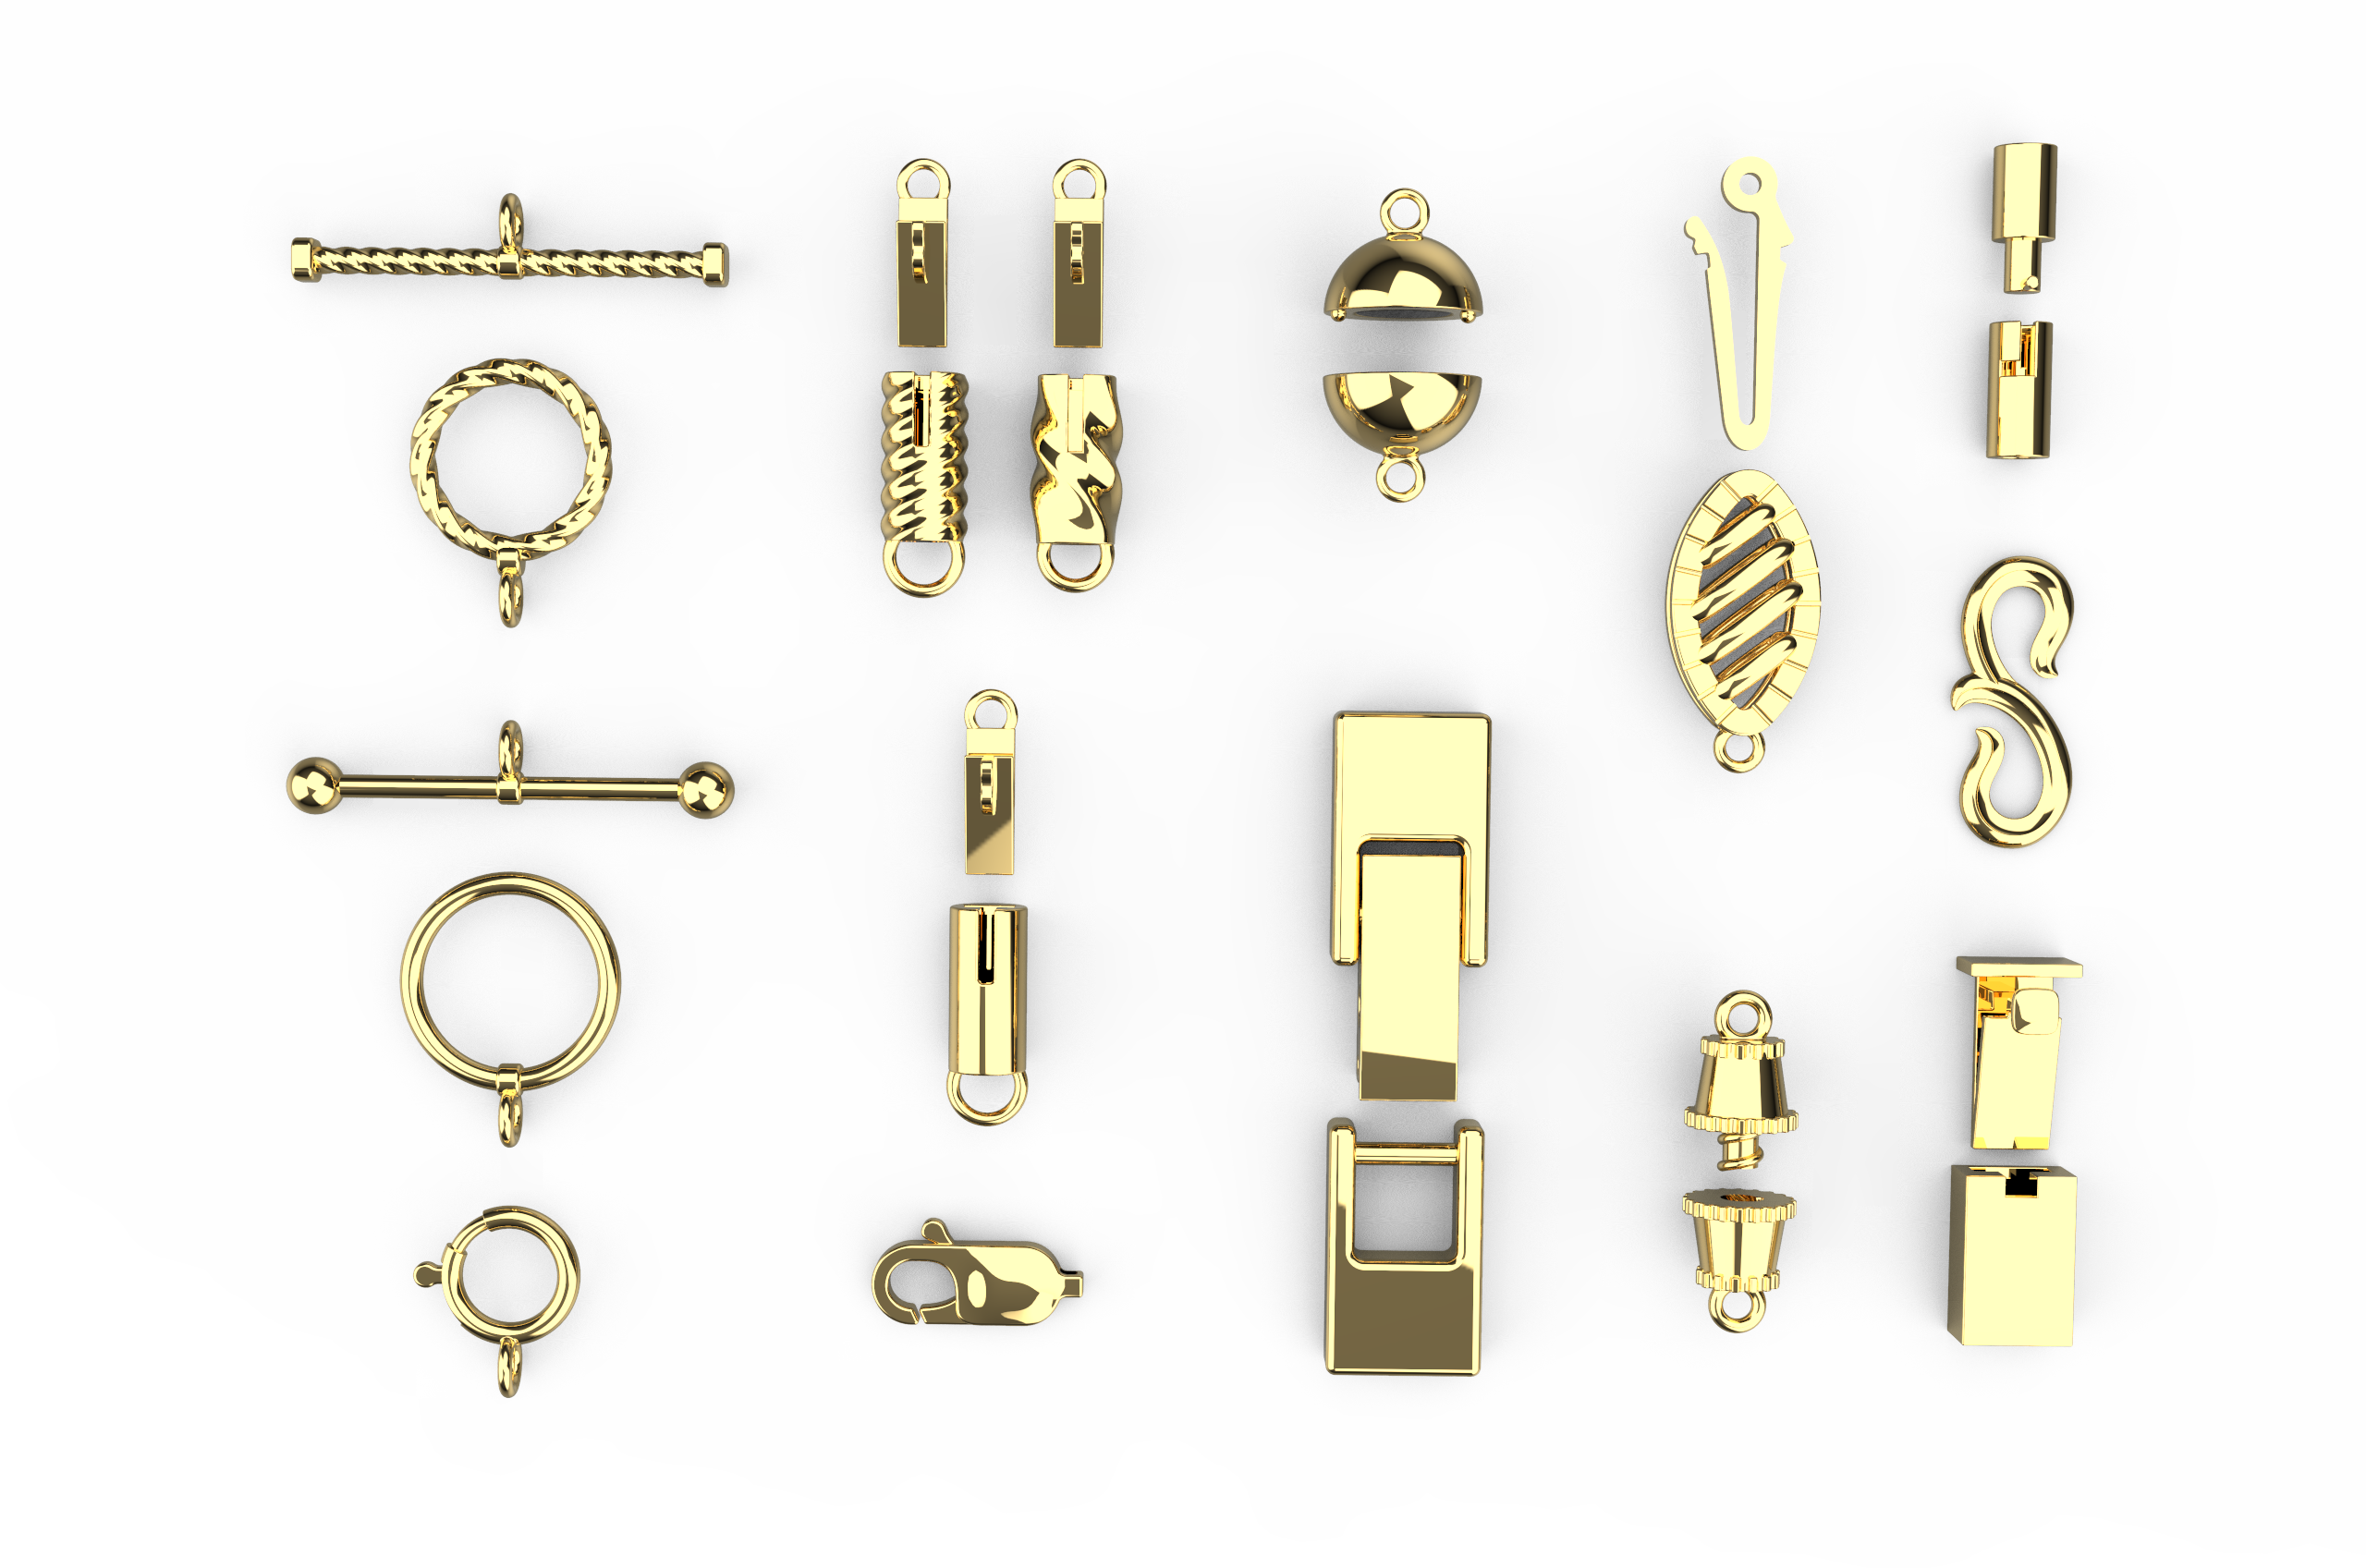 jewelry cad design clasp 3d modeling with rhino 6